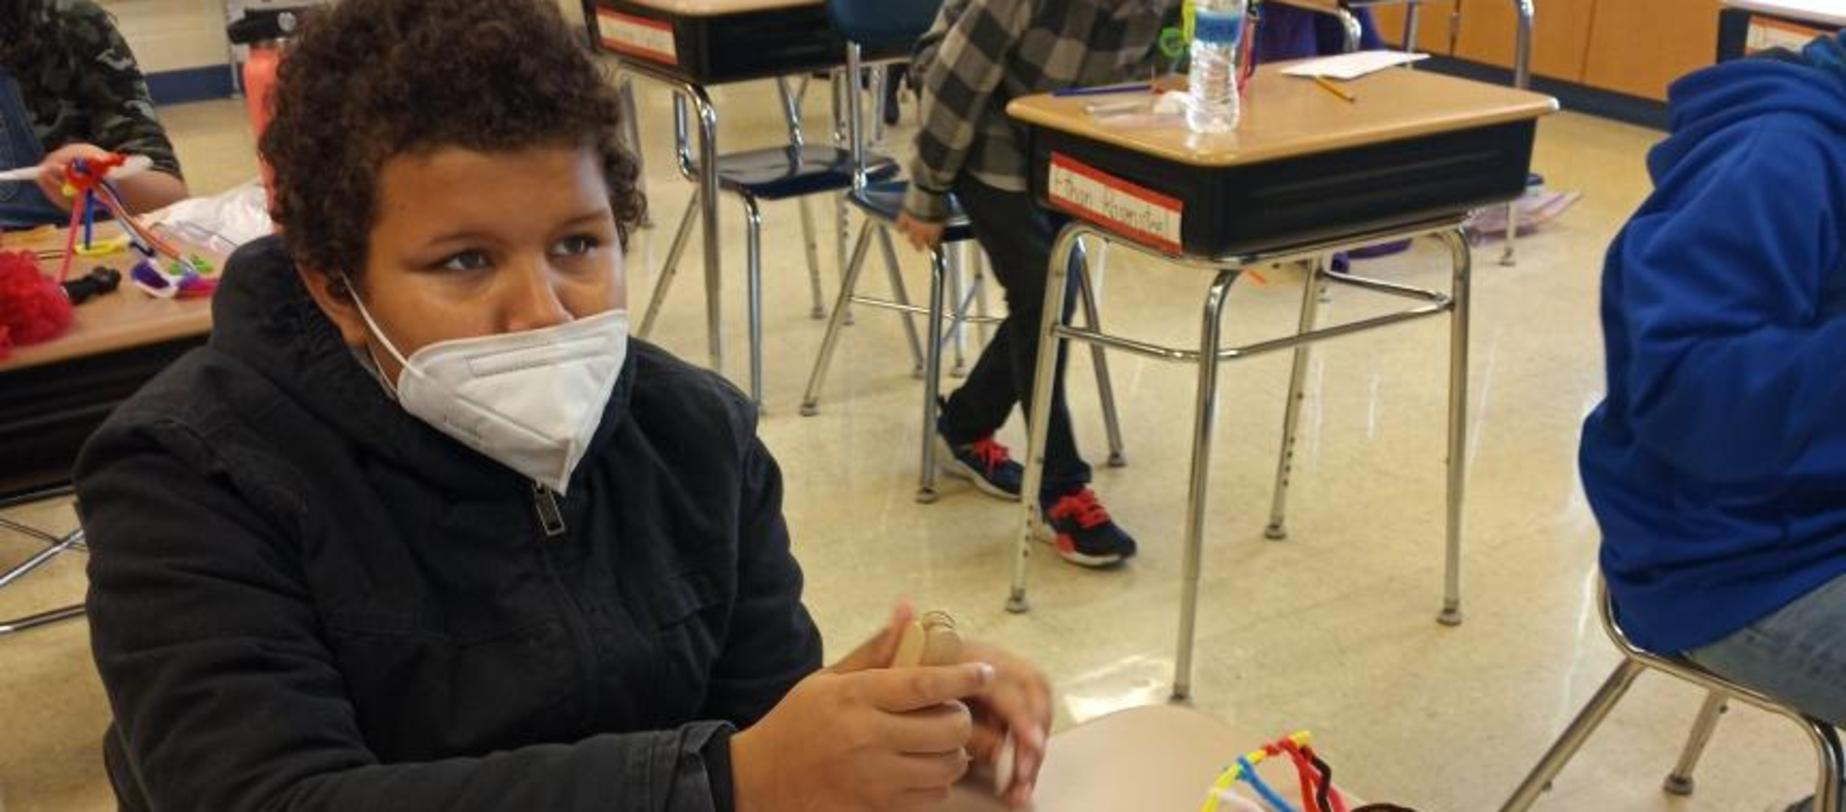 student wearing mask working on projects